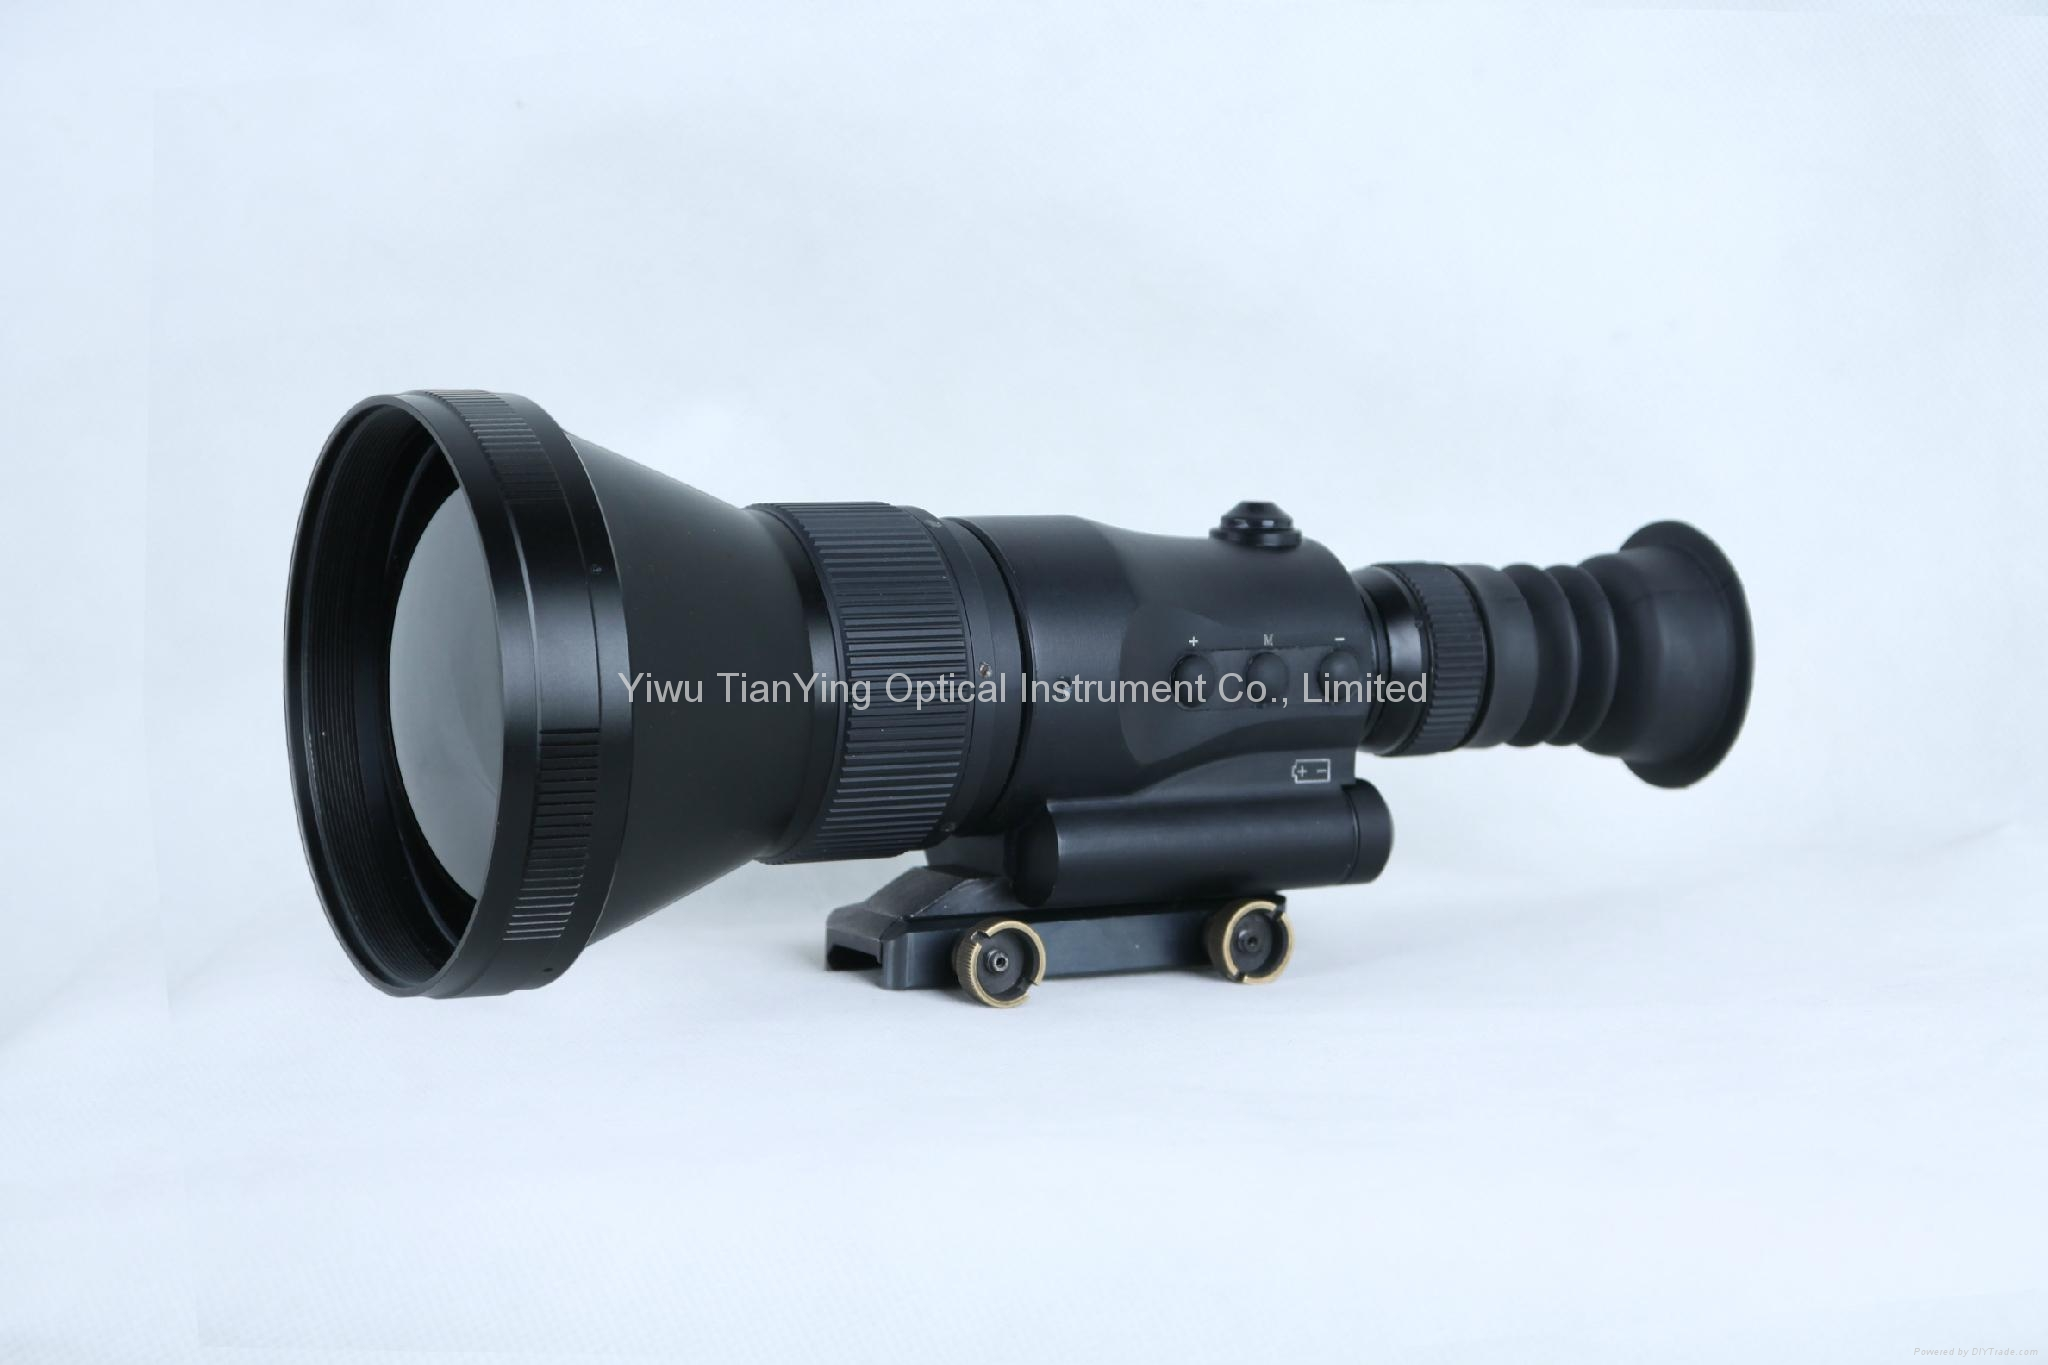 640x512 4.5x 1300m Sniper Thermal Weapon Sights -1